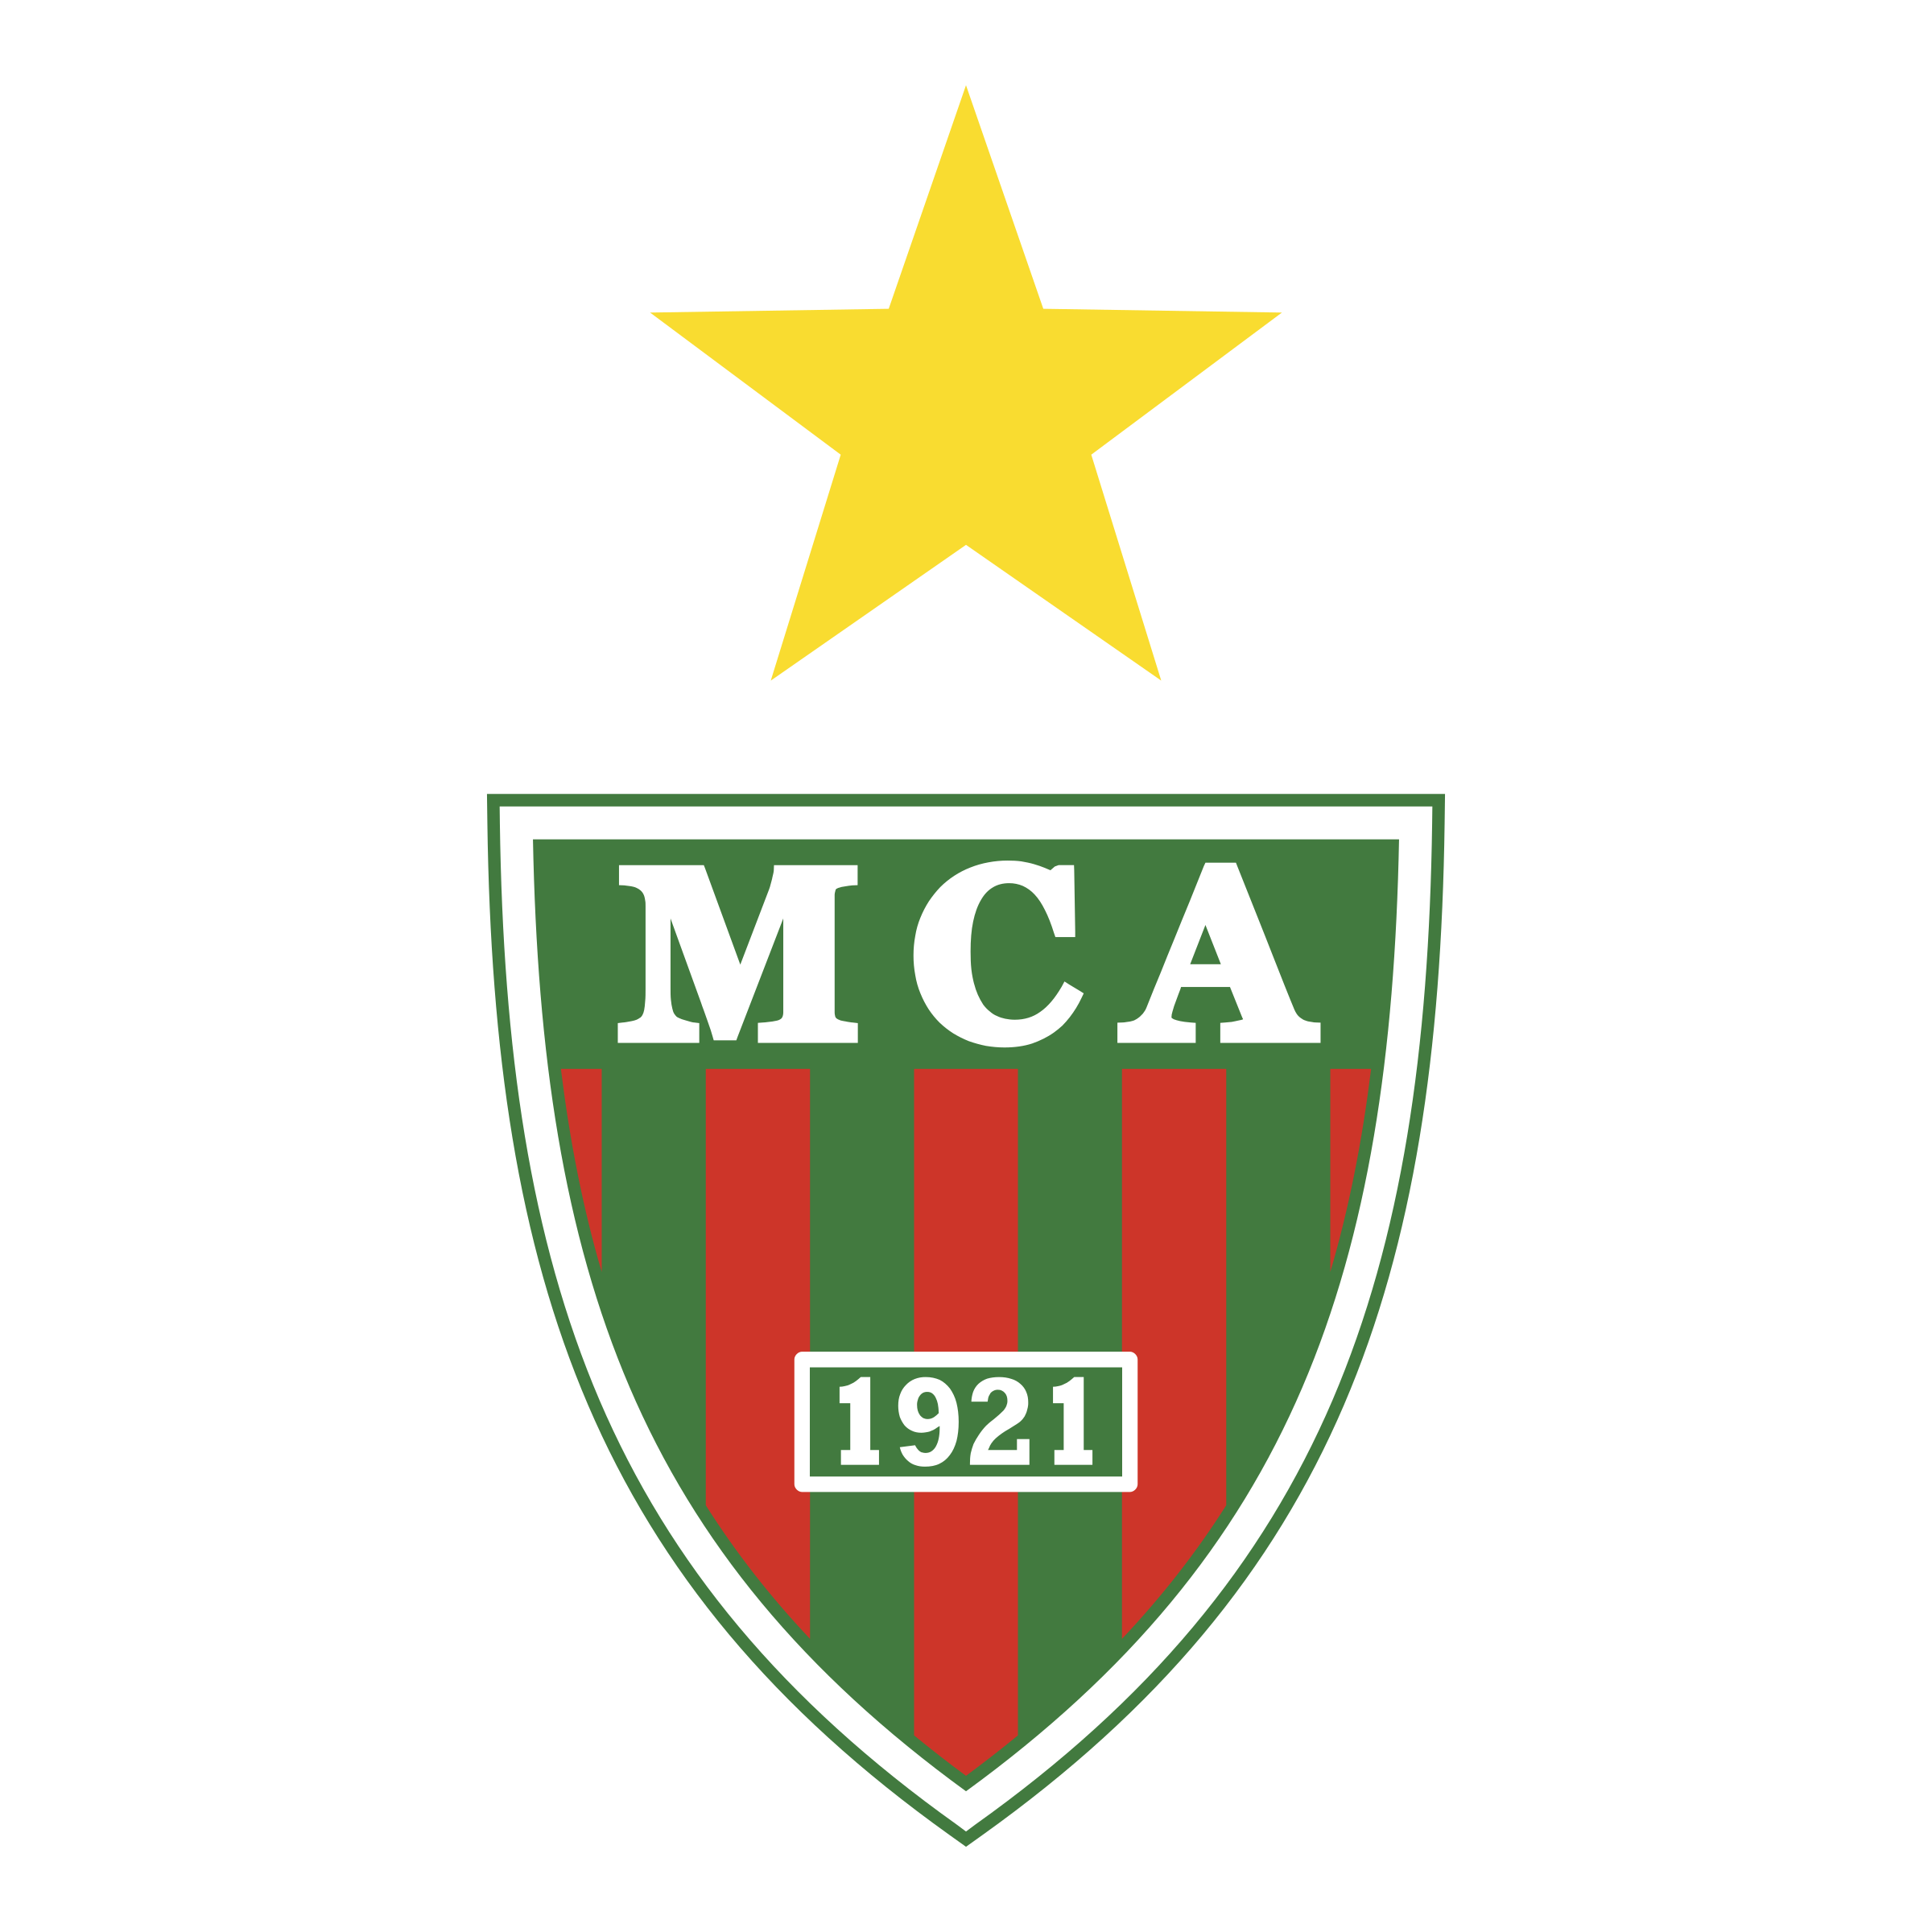 MCA Logo PNG Transparent & SVG Vector.